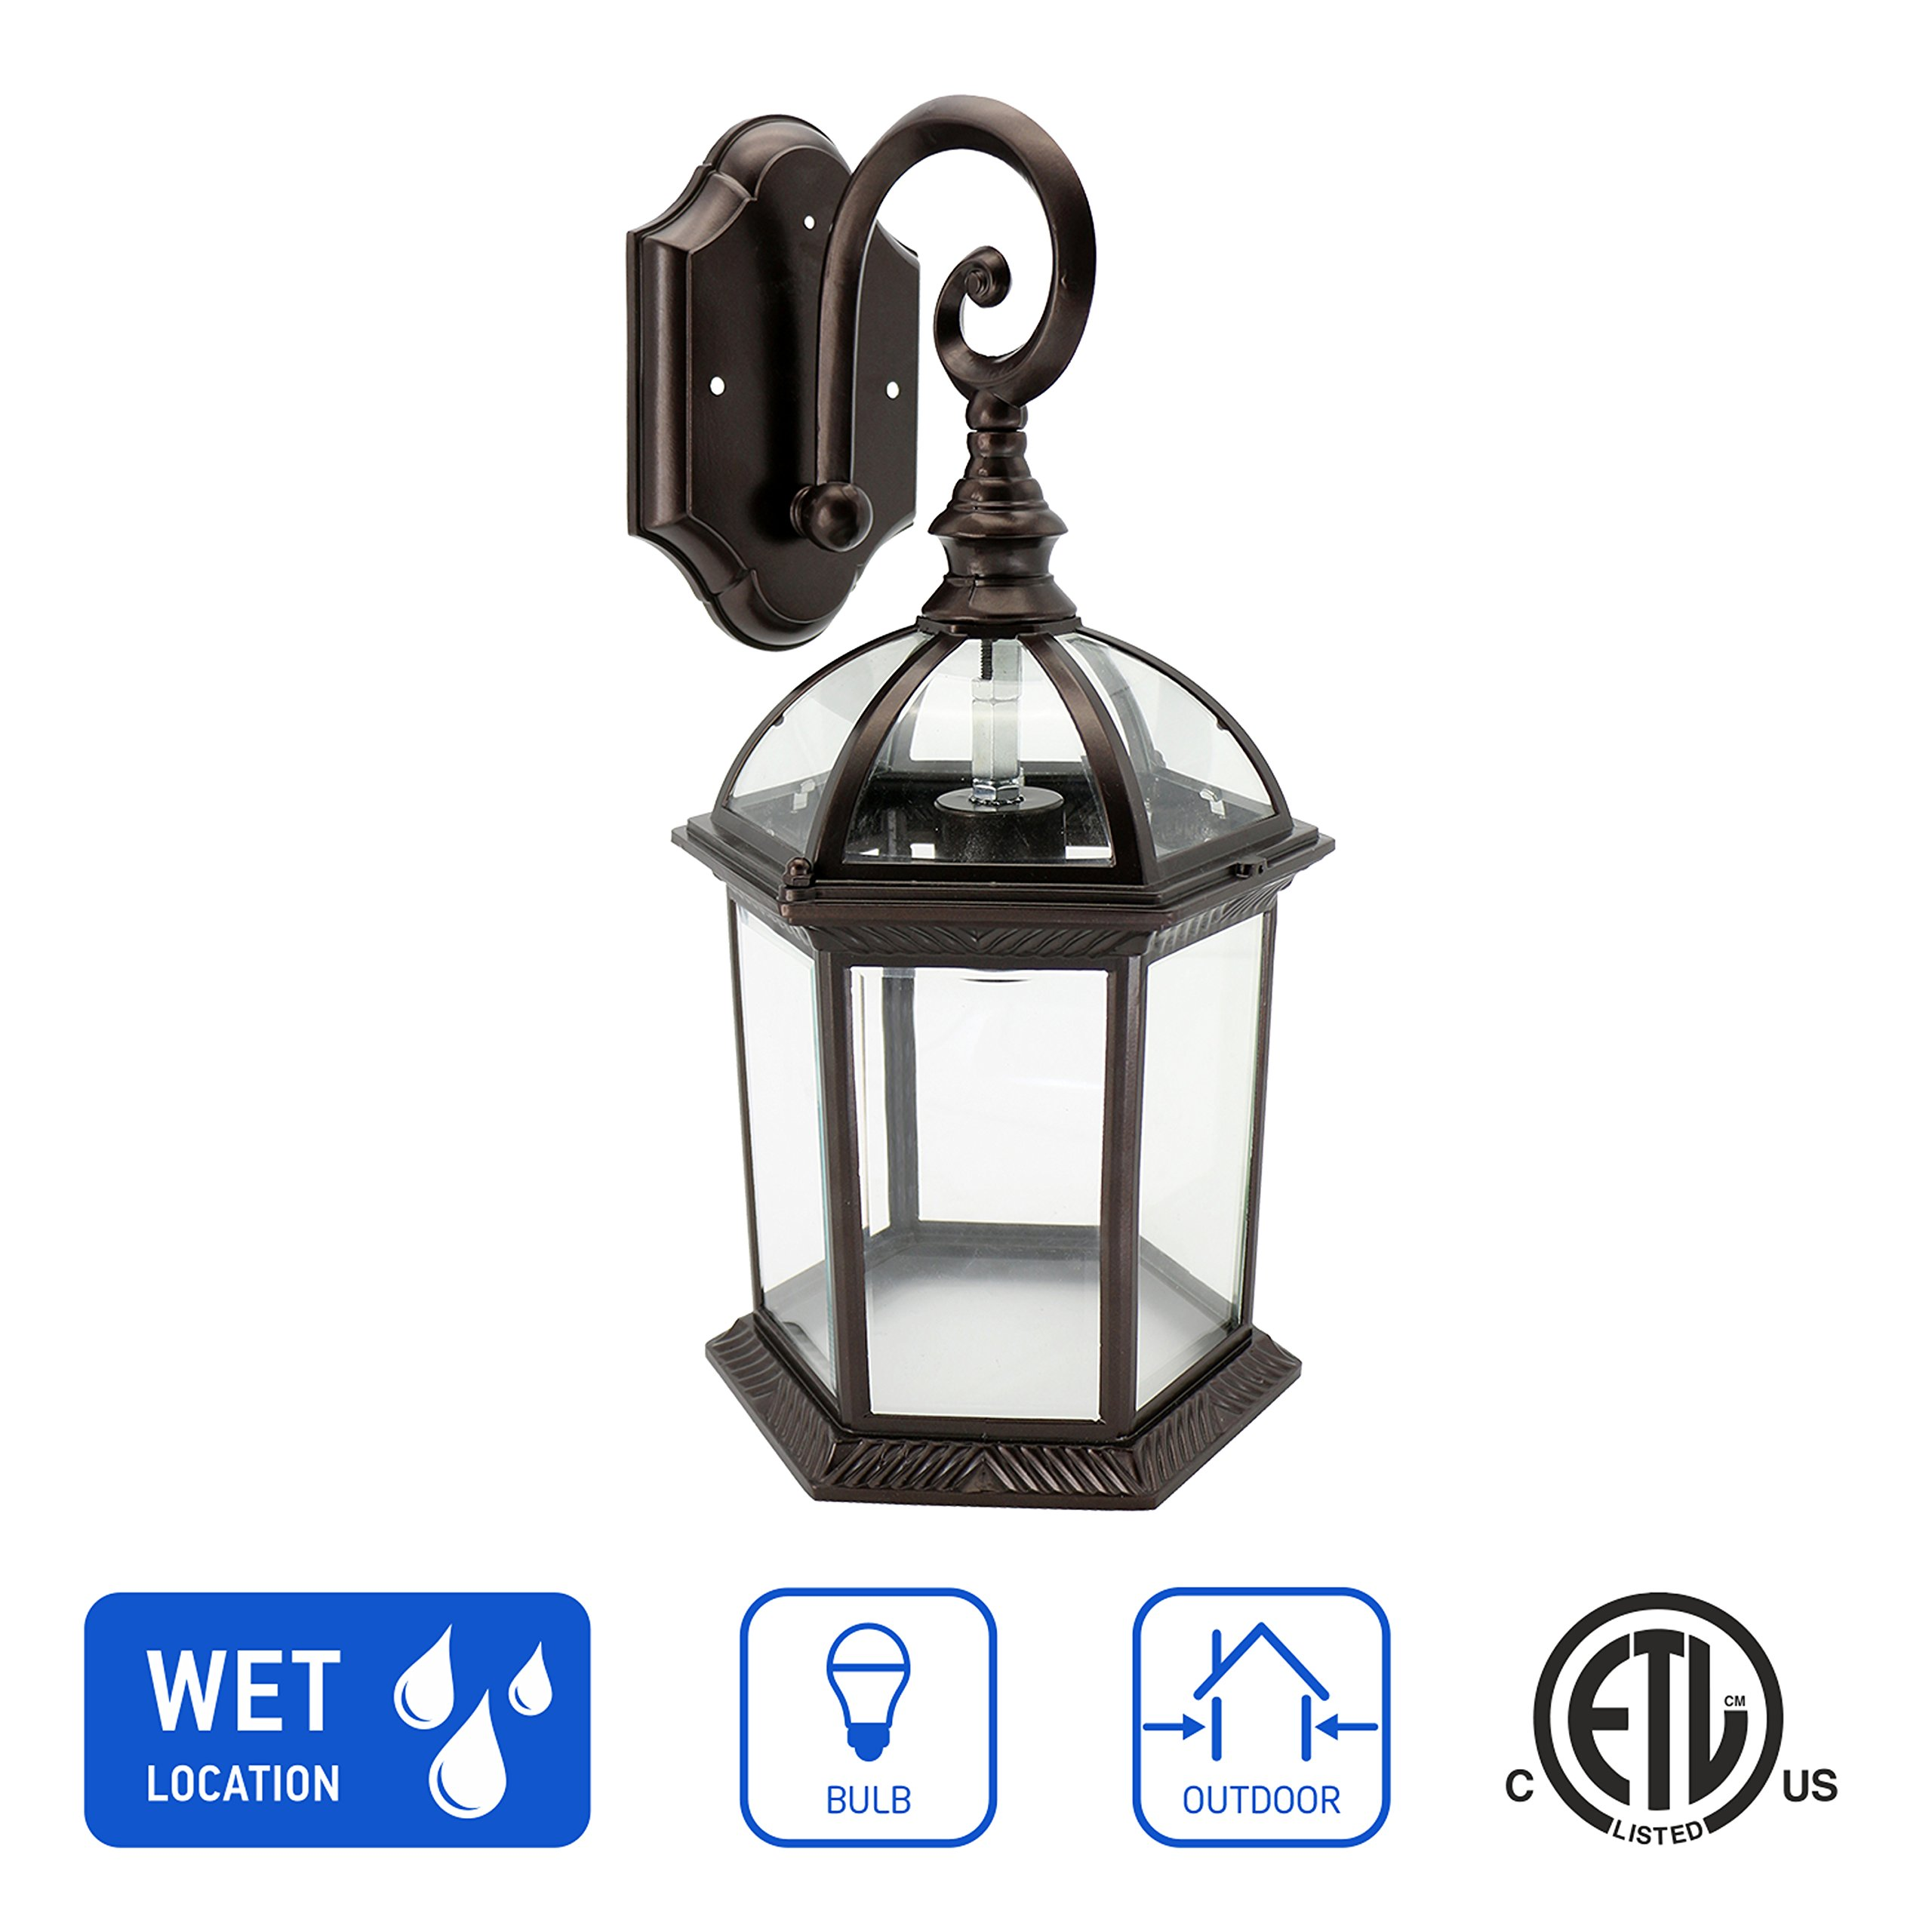 IN HOME 1-Light Outdoor Wall Mount Lantern Downward Fixture L07 Series Traditional Design Bronze Finish, Clear Glass Shade, ETL Listed